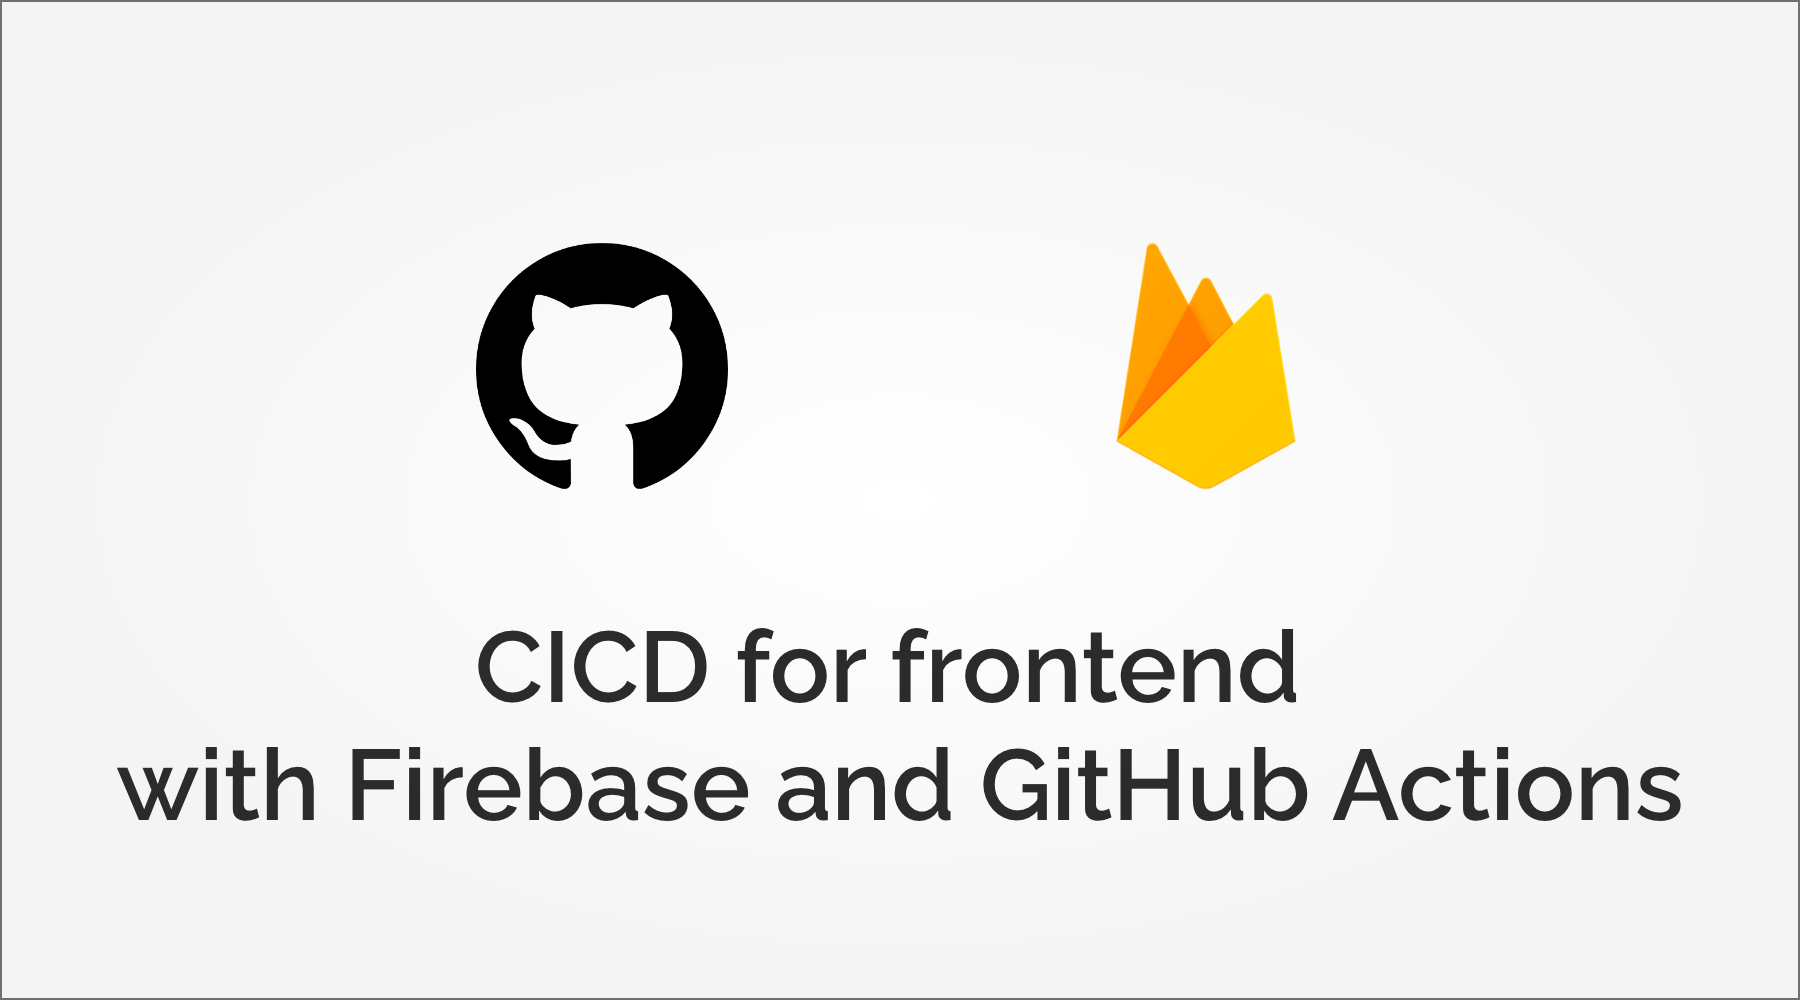 CICD for frontend with Firebase and GitHub Actions